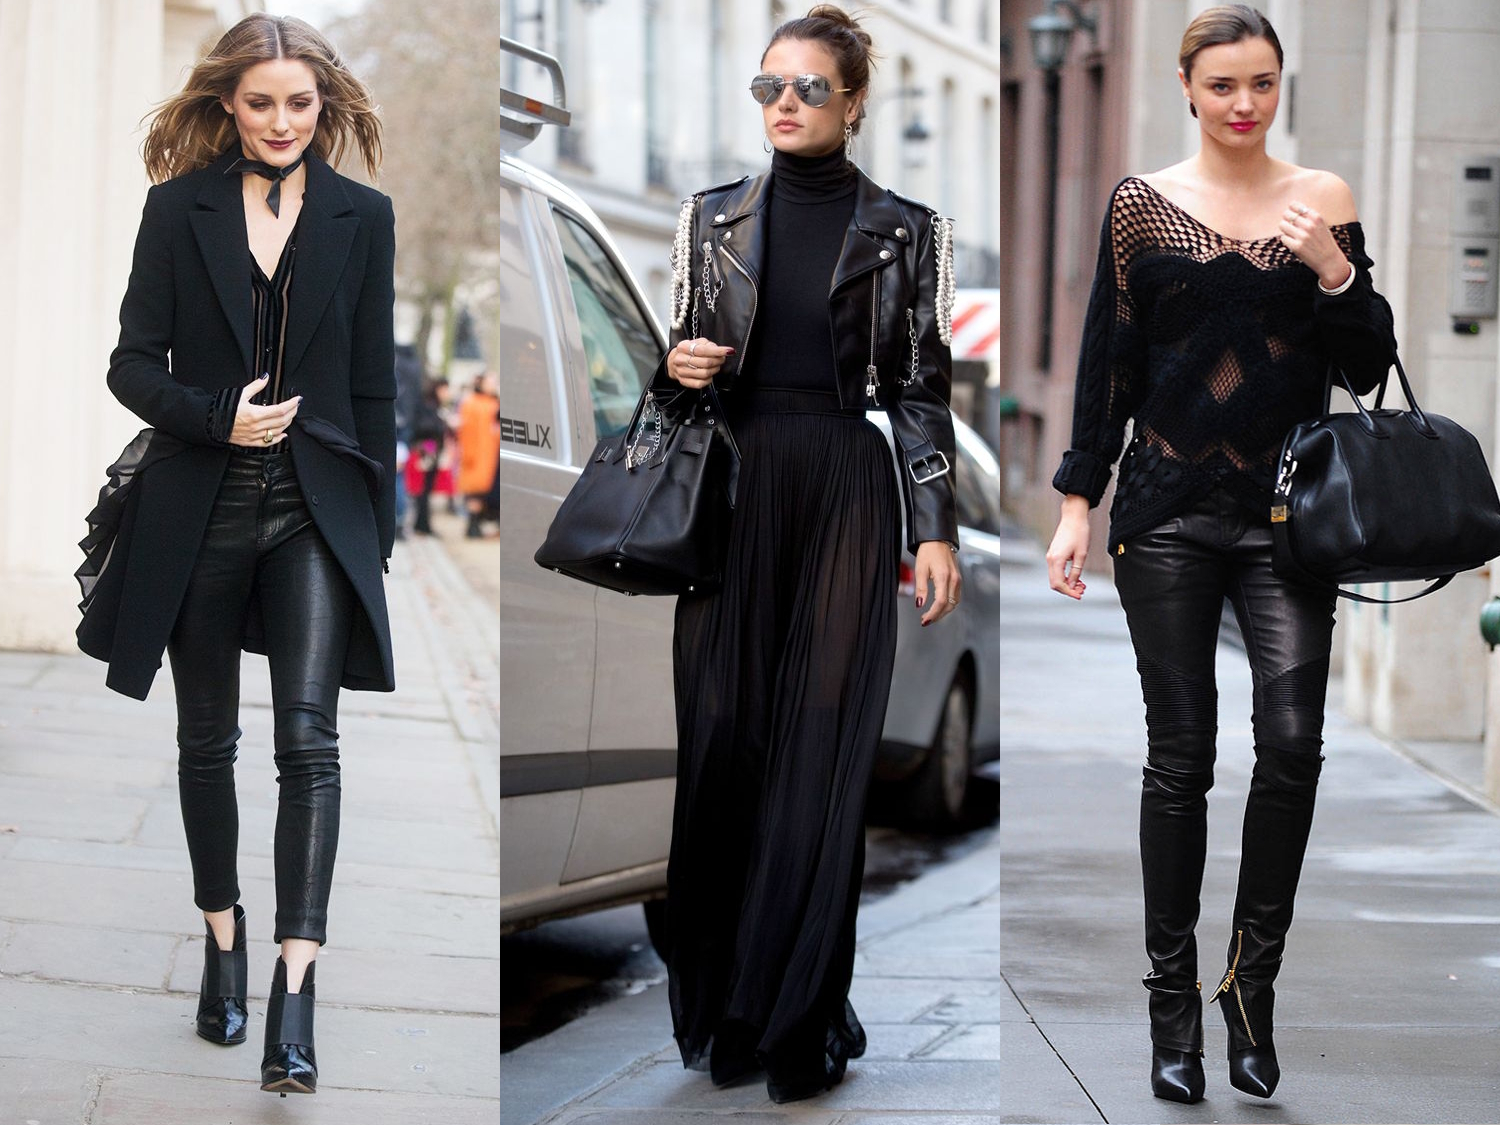 black color clothing outfit liz breygel january girl fashion style trend blog blogger